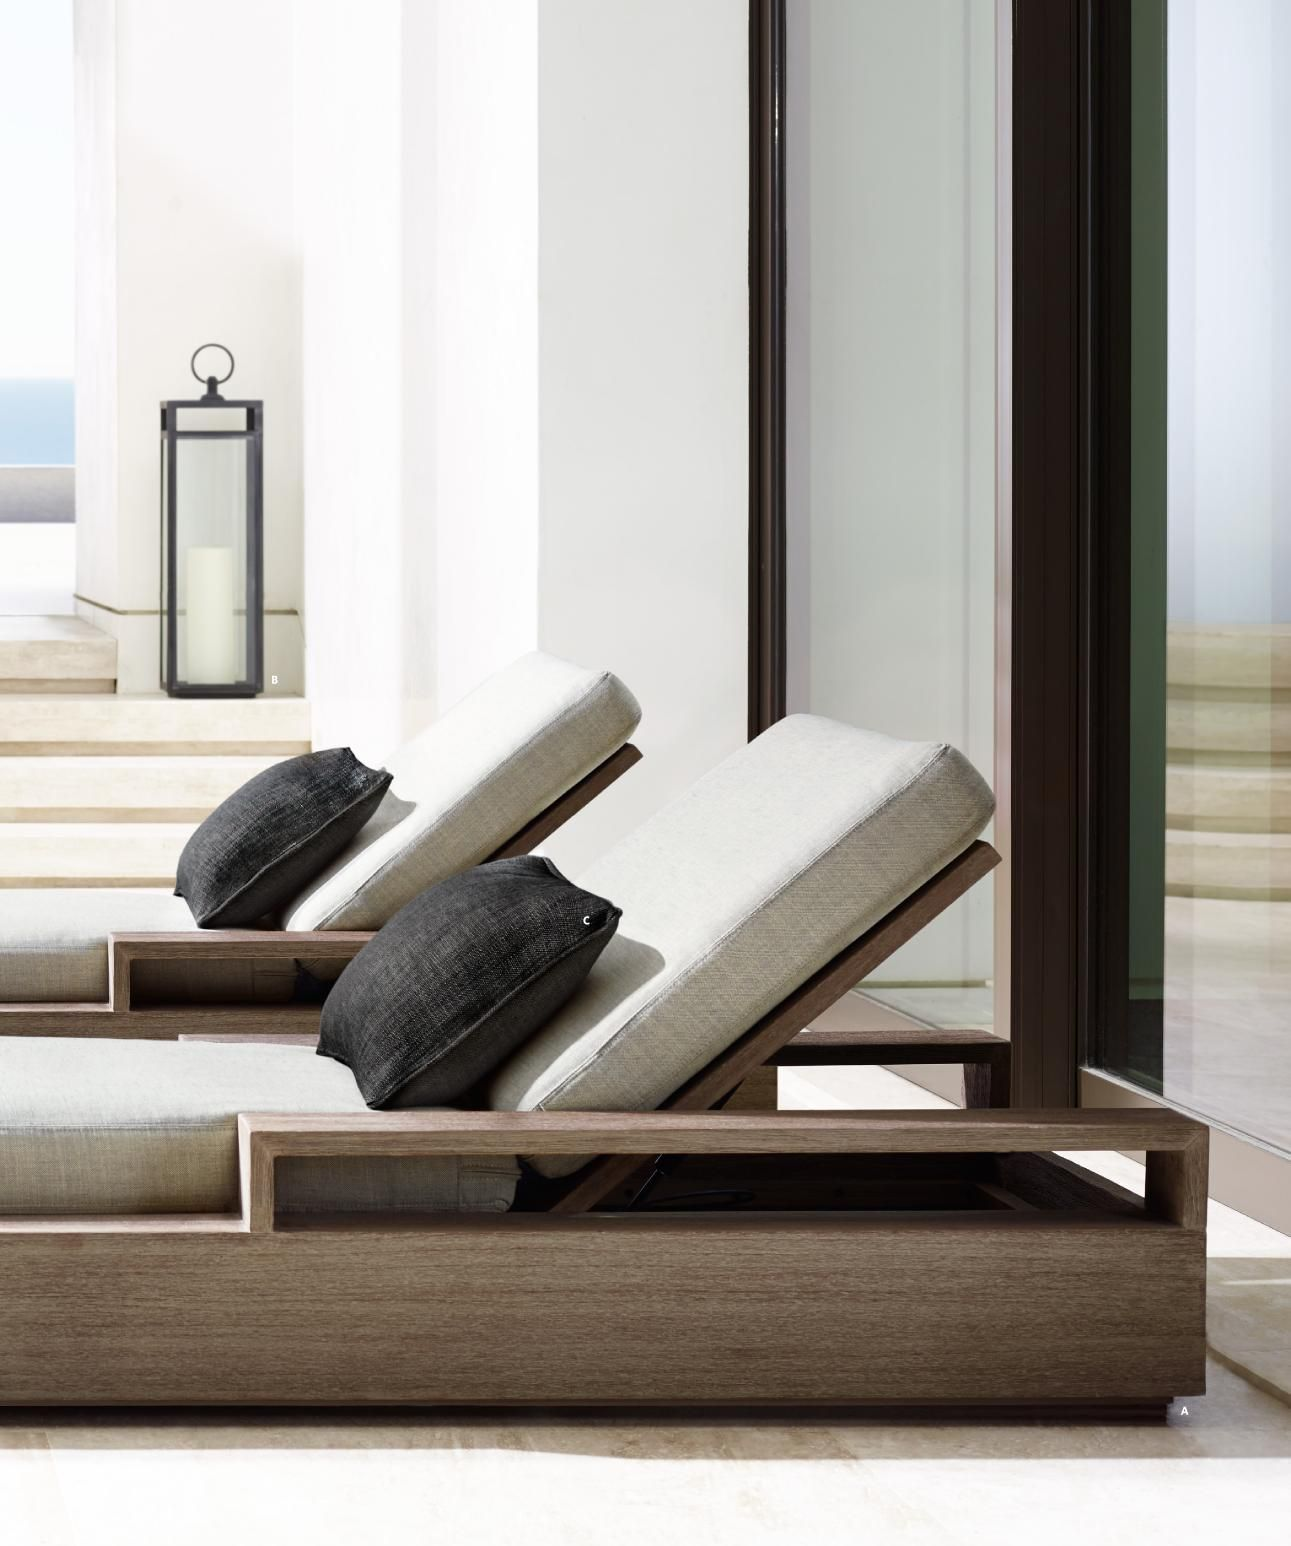 marbella furniture collection. Outdoor Lounge From The Marbella Collection By RH\u2026 Furniture